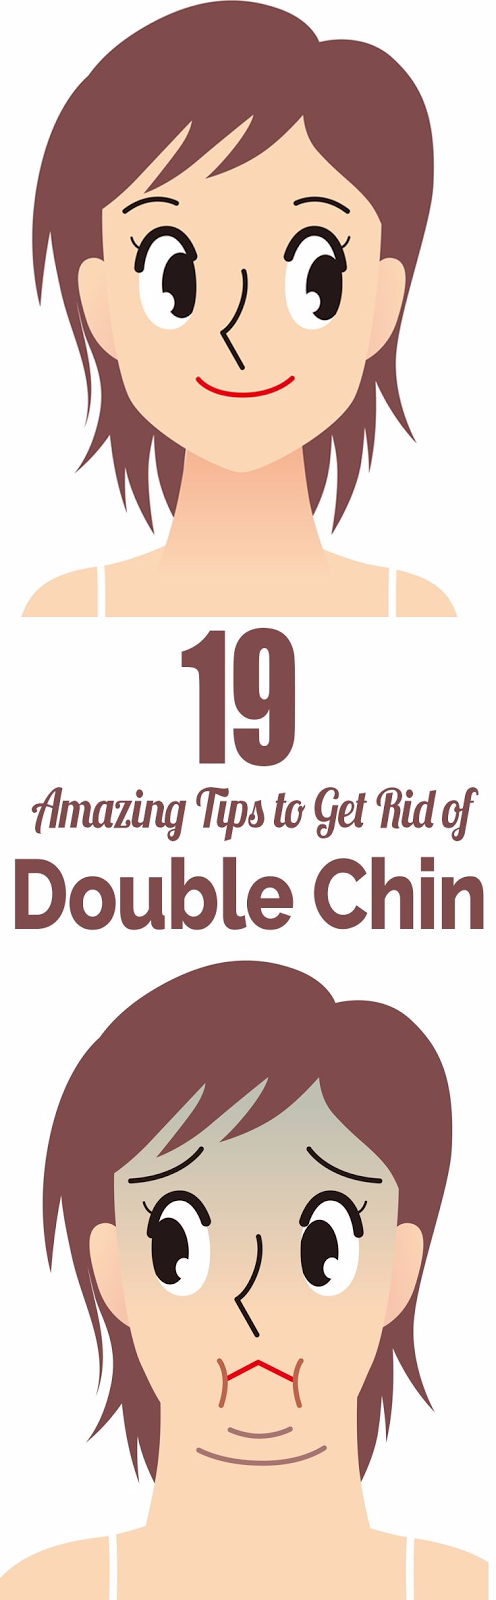 12 DIY Home Remedies For Double Chin